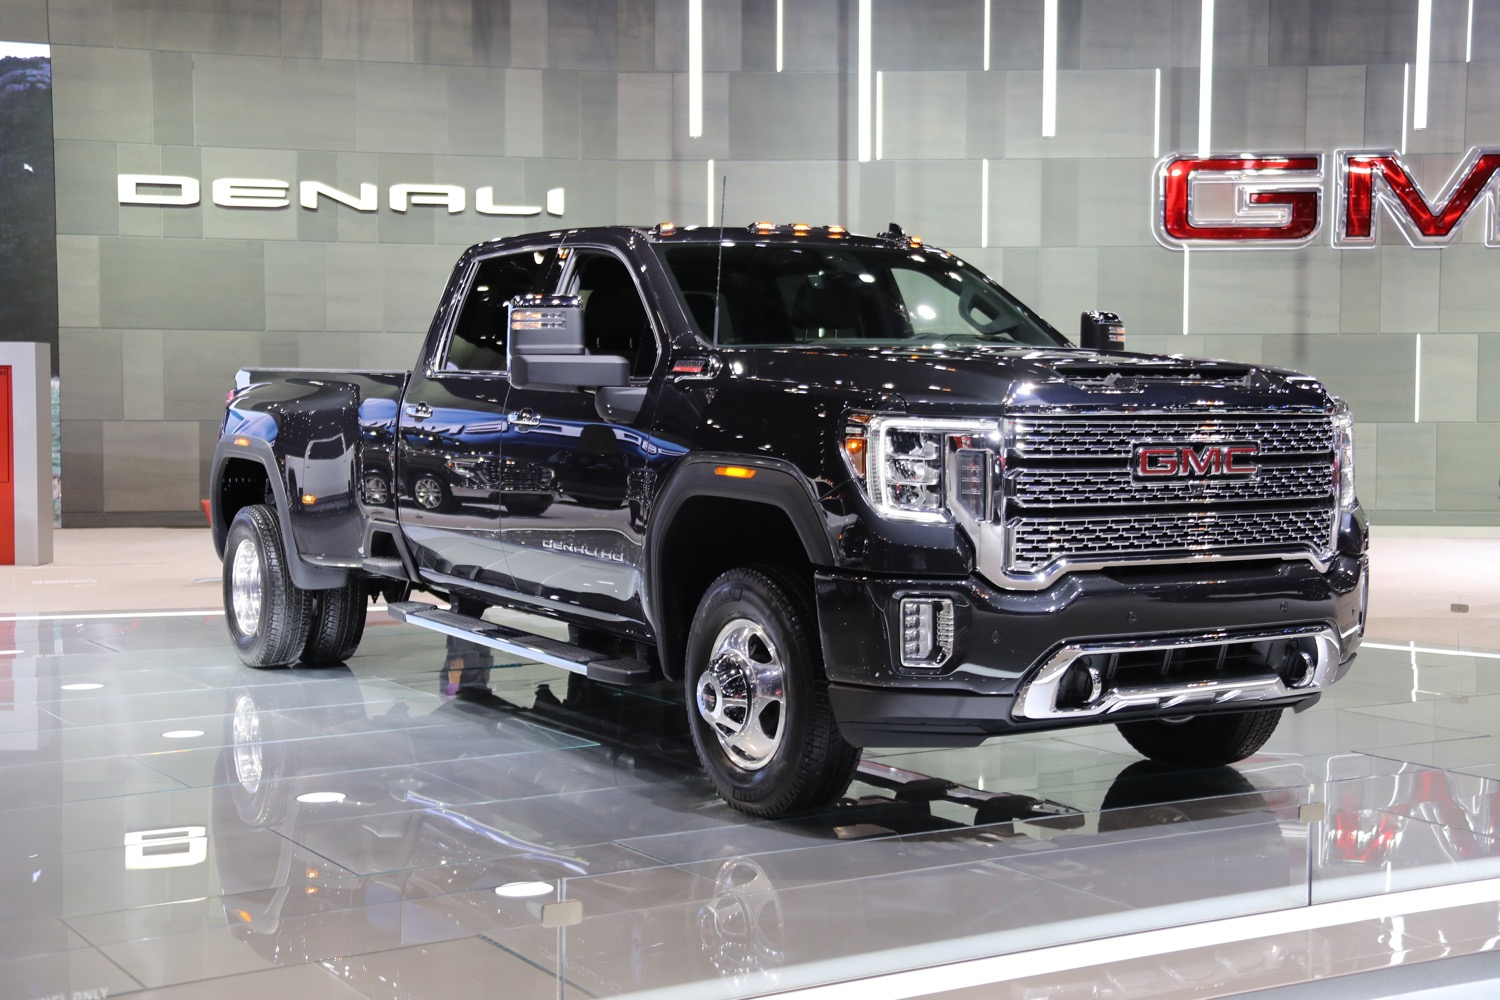 2020 Gmc Sierra Hd Pricing Starts At $37,195 | Gm Authority 2020 Gmc Sierra 2500Hd Crew Cab, Price, Release Date